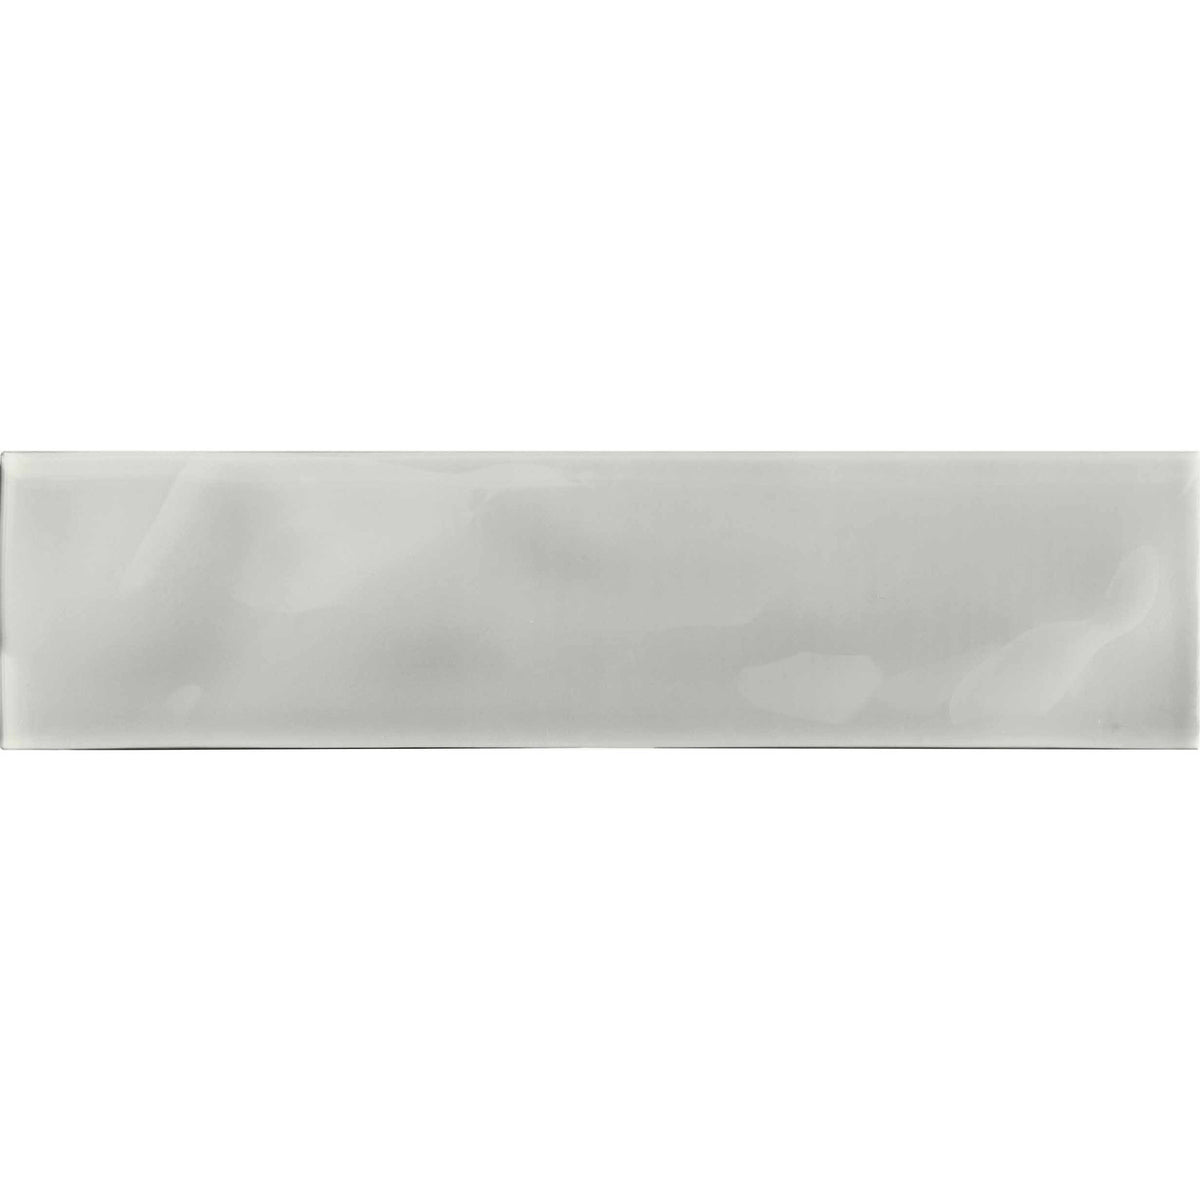 Anatolia - Element Artisan 3 in. x 12 in. Wall Tile - Mist